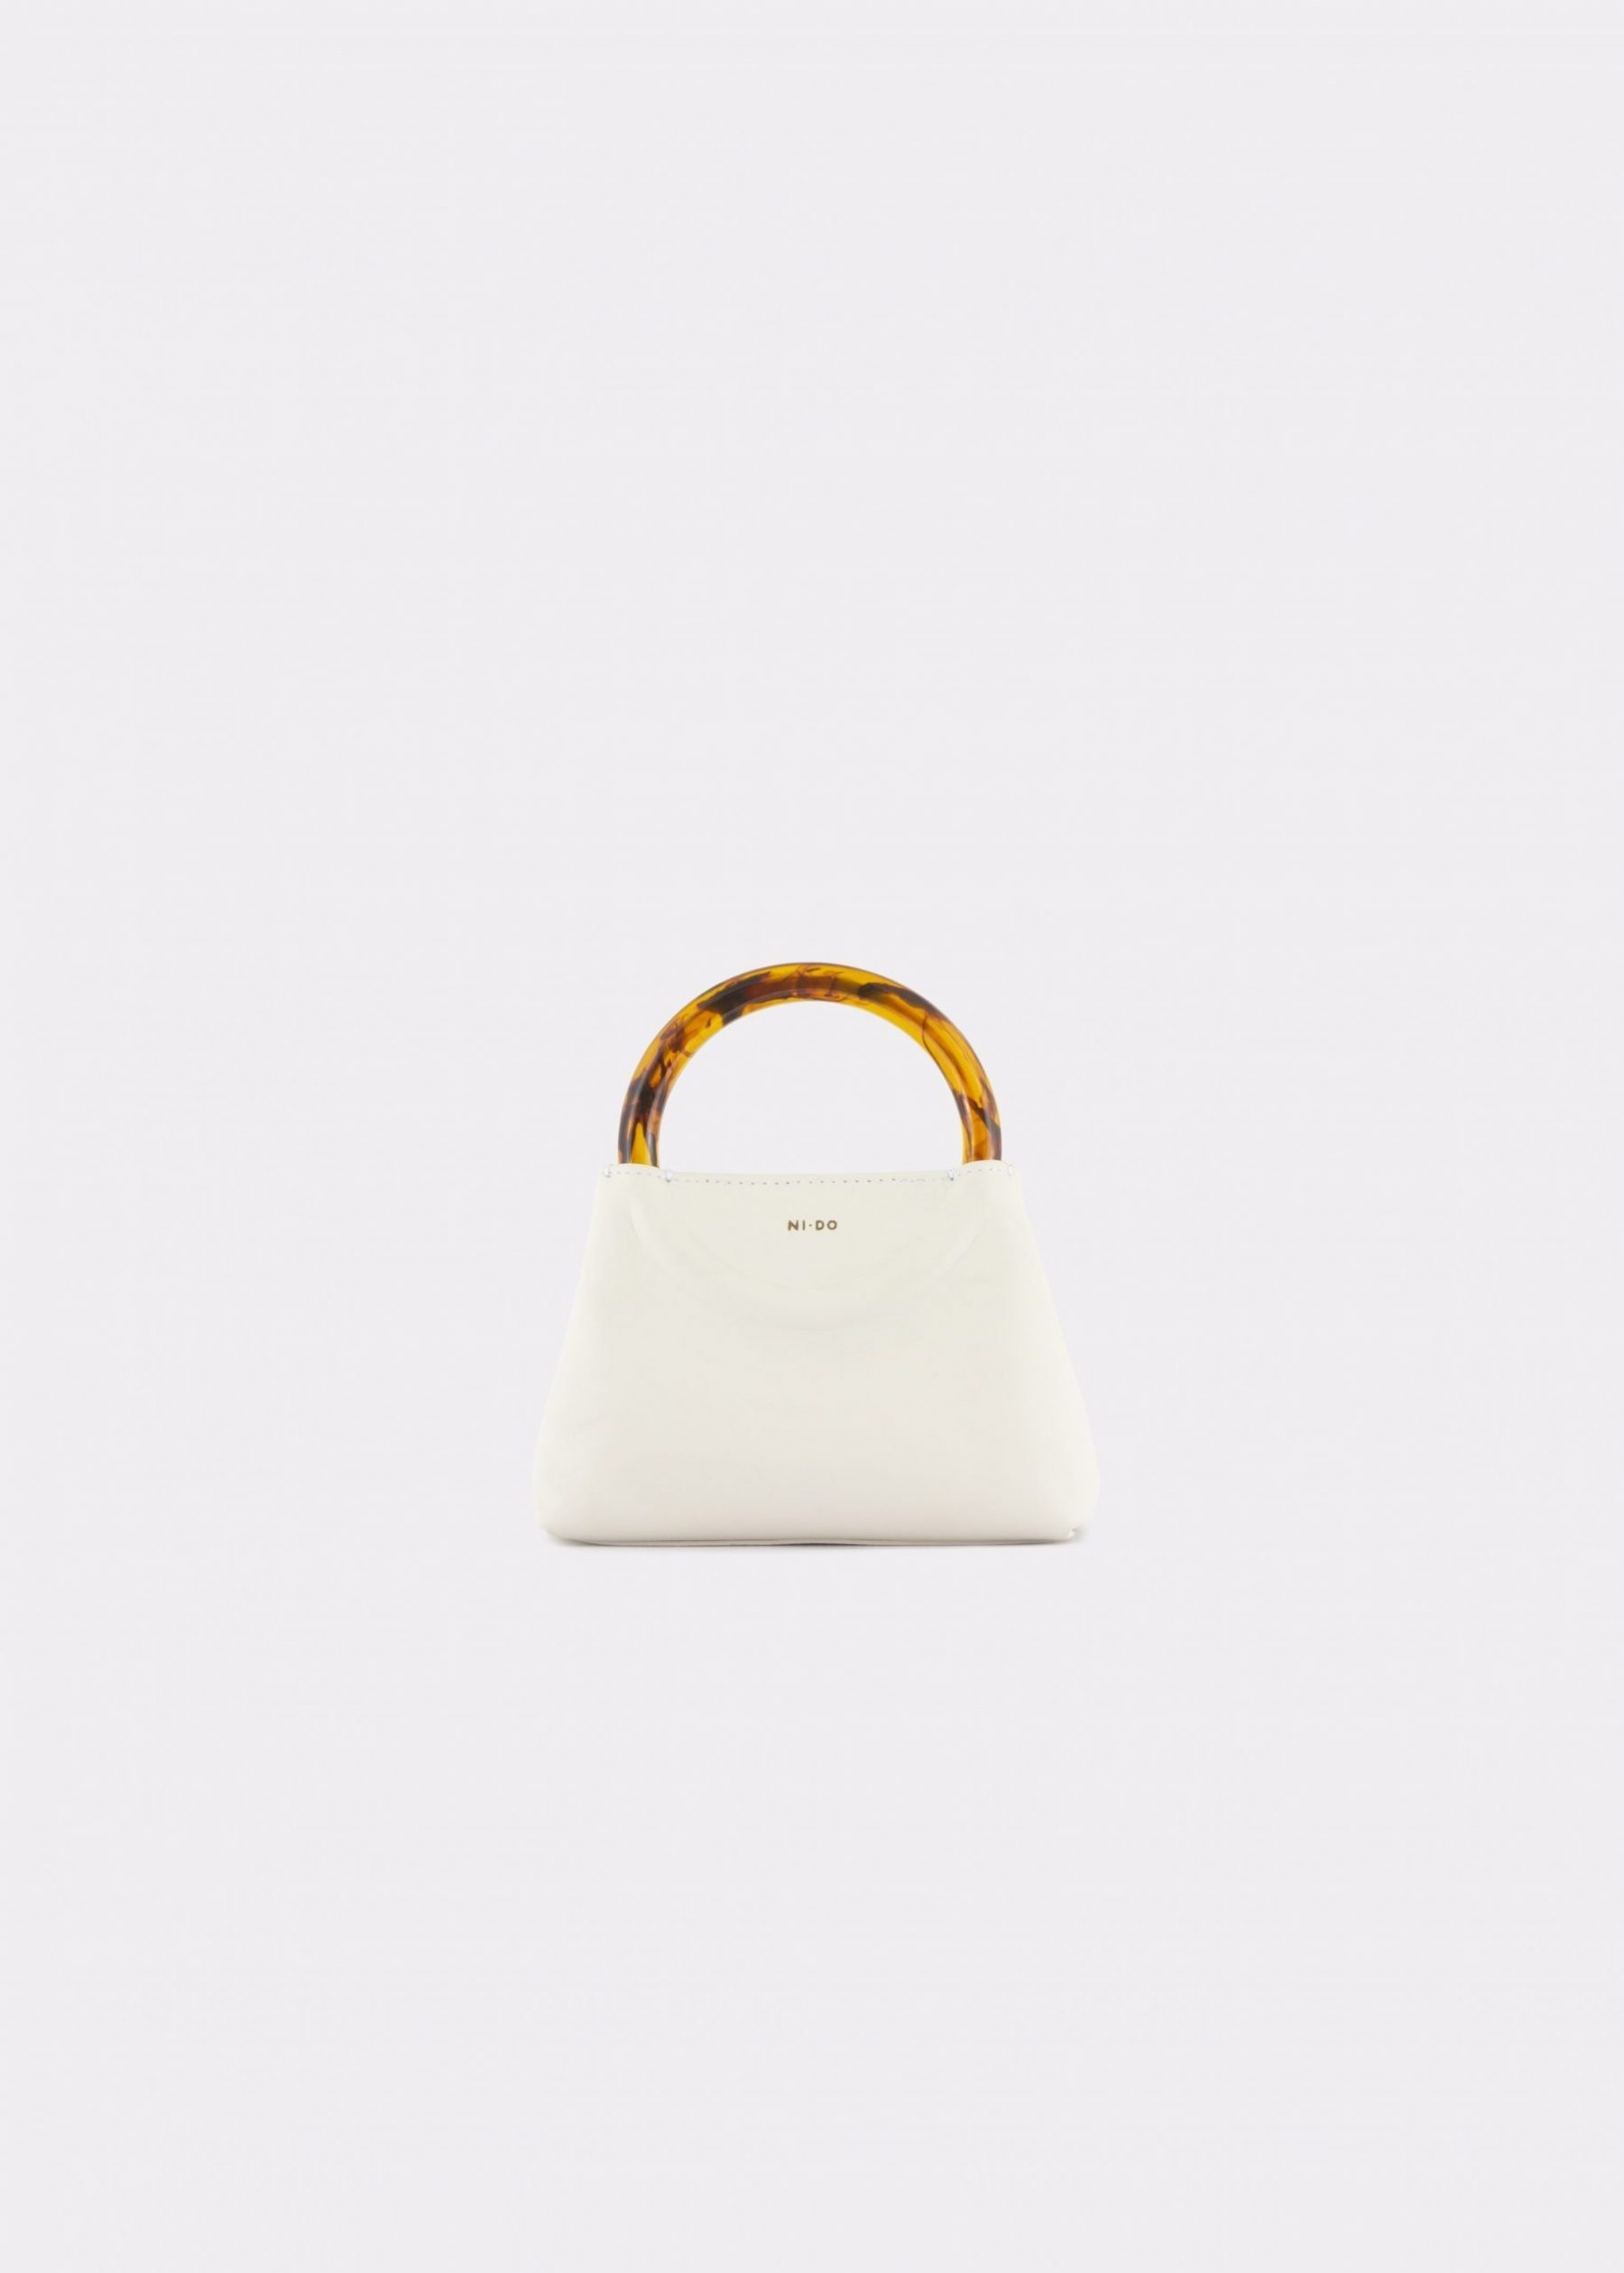 NIDO Bolla Micro bag soy milk leather Amber_front view